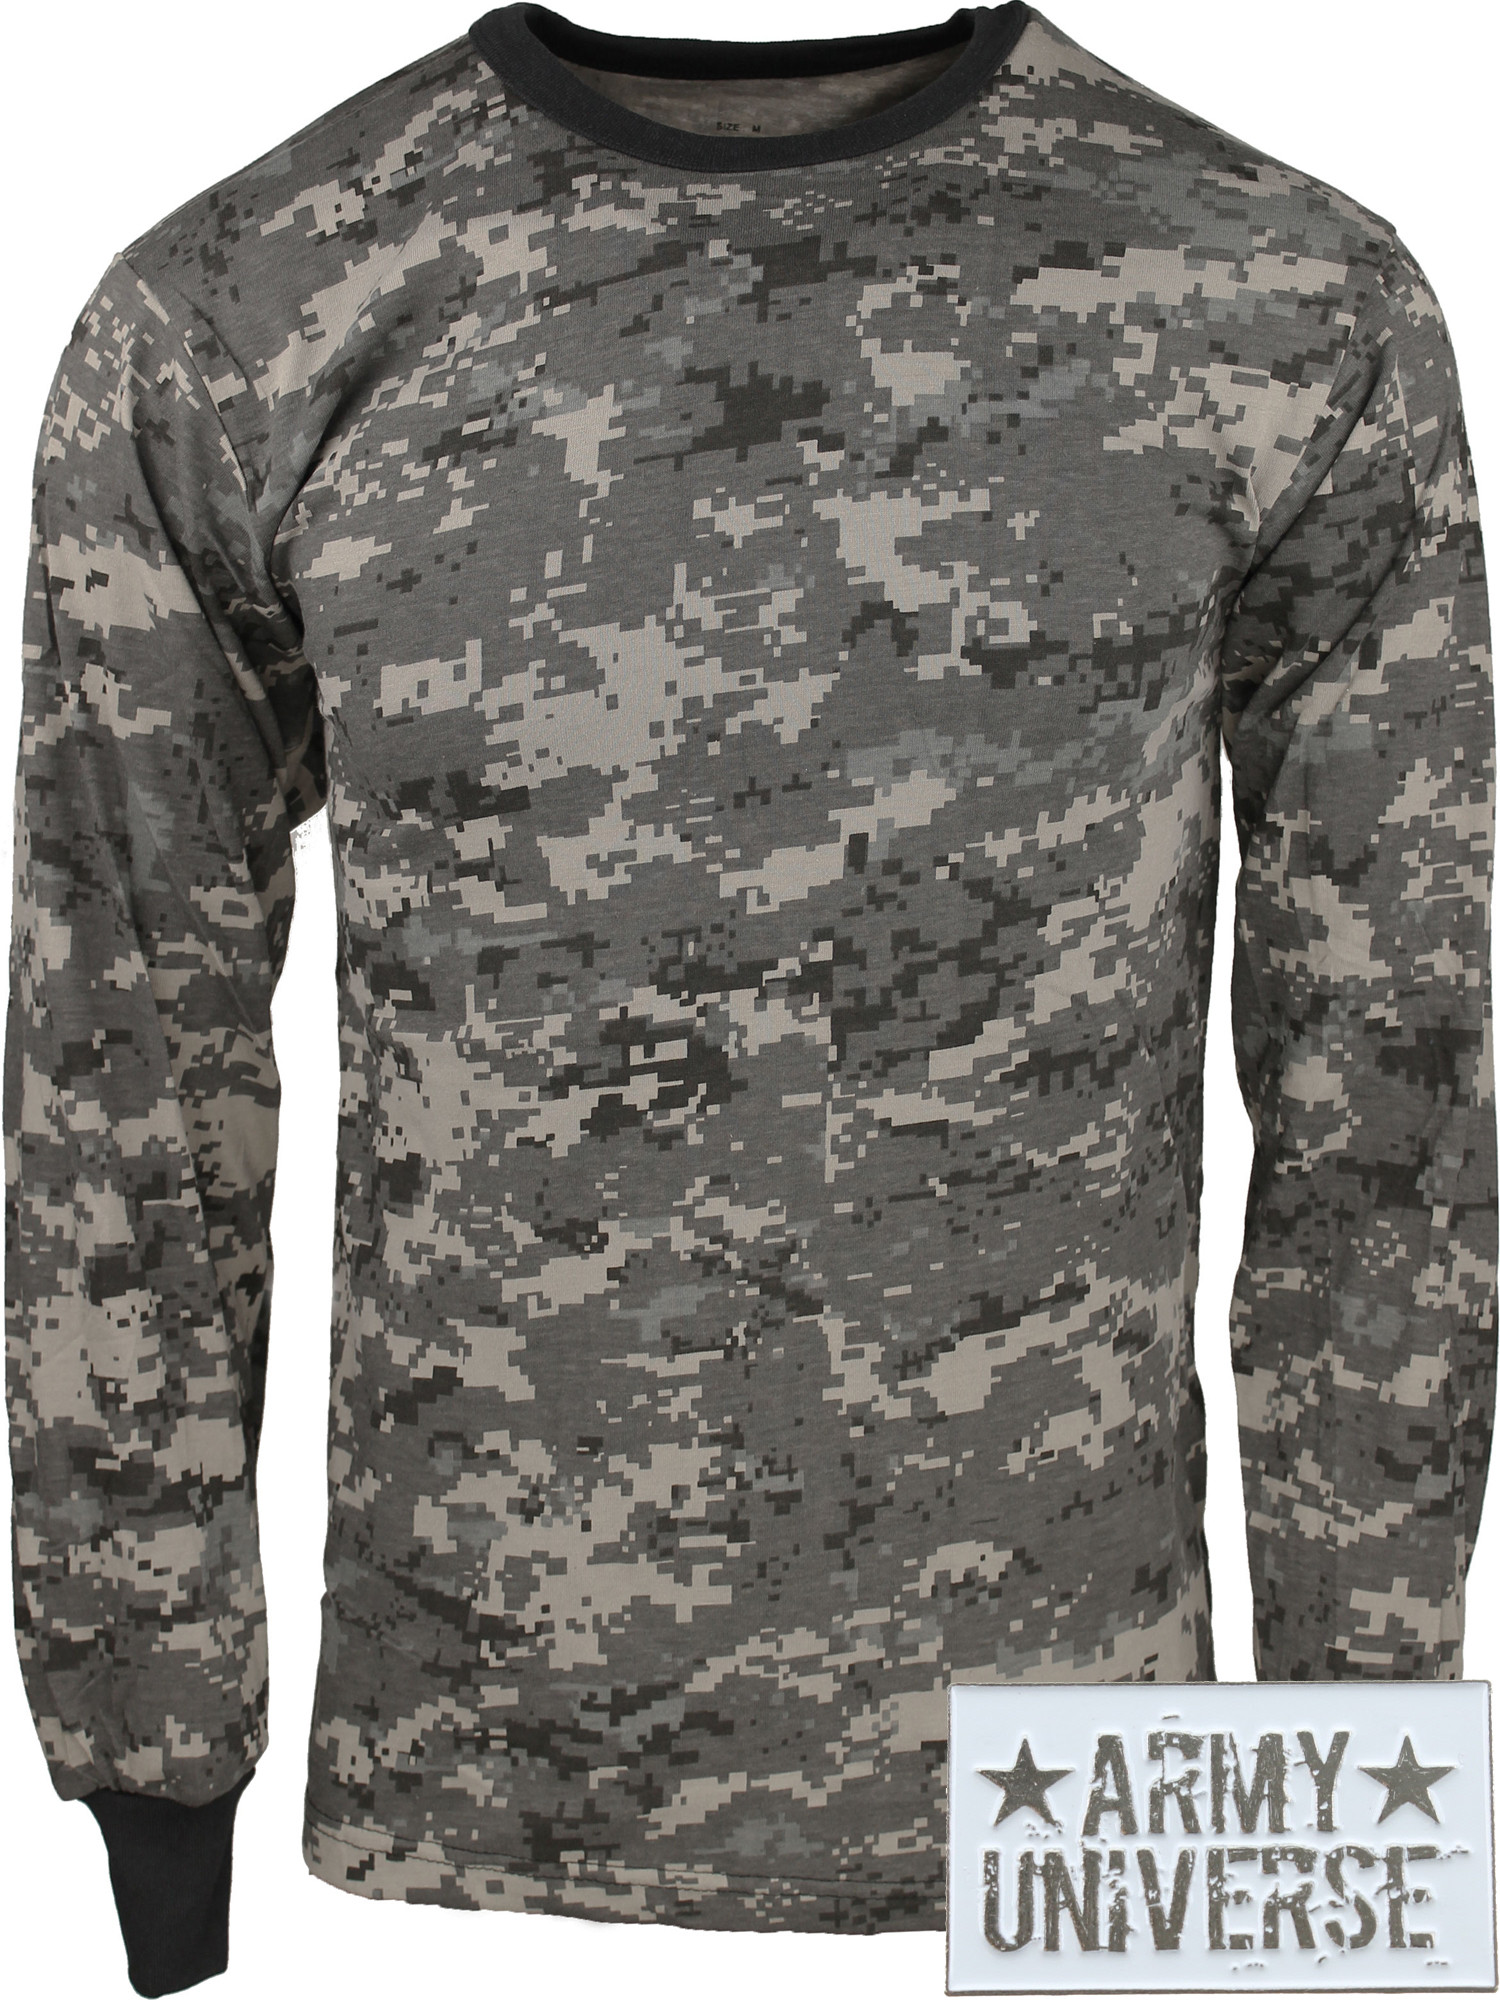 ... Subdued Urban Digital Camouflage Military Crewneck Long Sleeve T Shirt  w  ArmyUniverse® Pin ... 160a5bd2fde